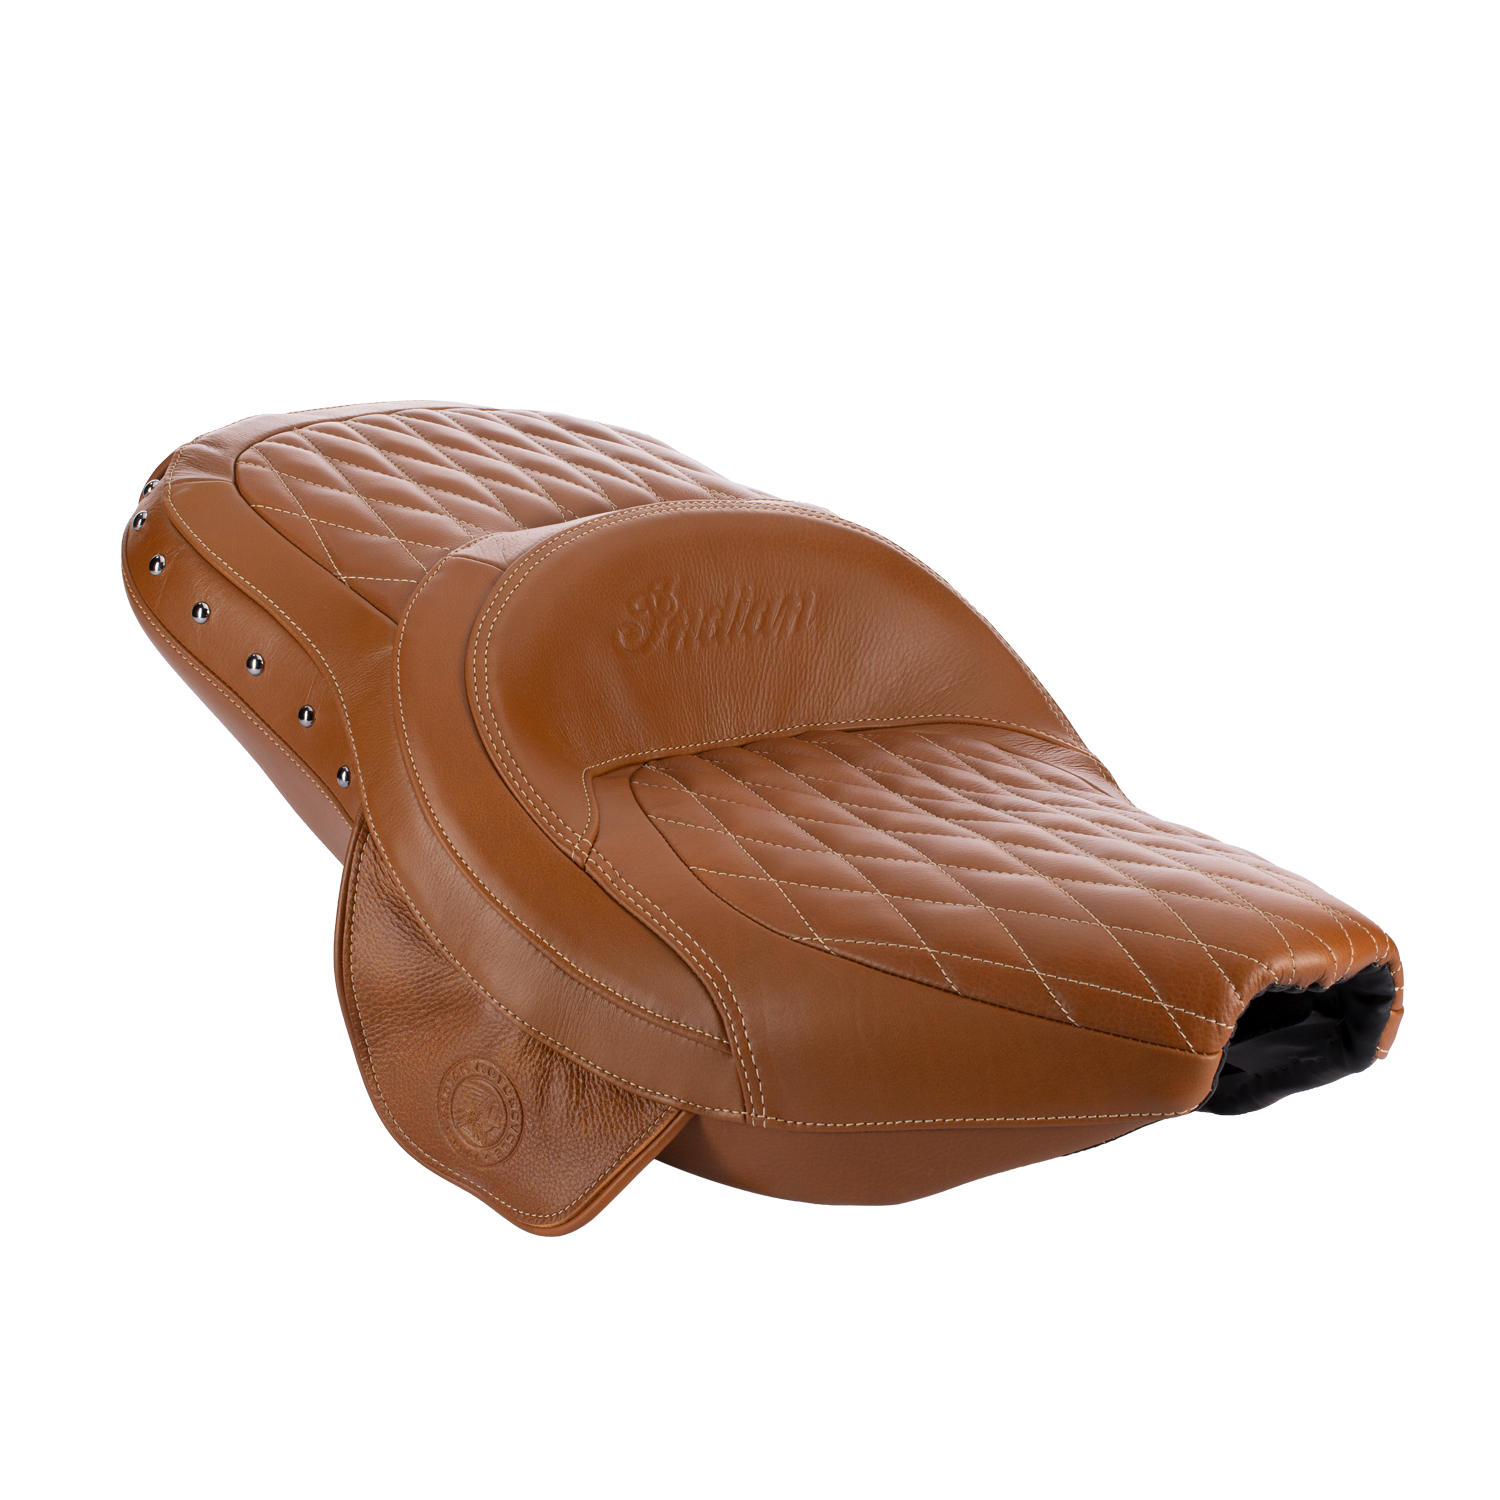 Genuine Leather Extended Reach Heated Seat - Desert Tan